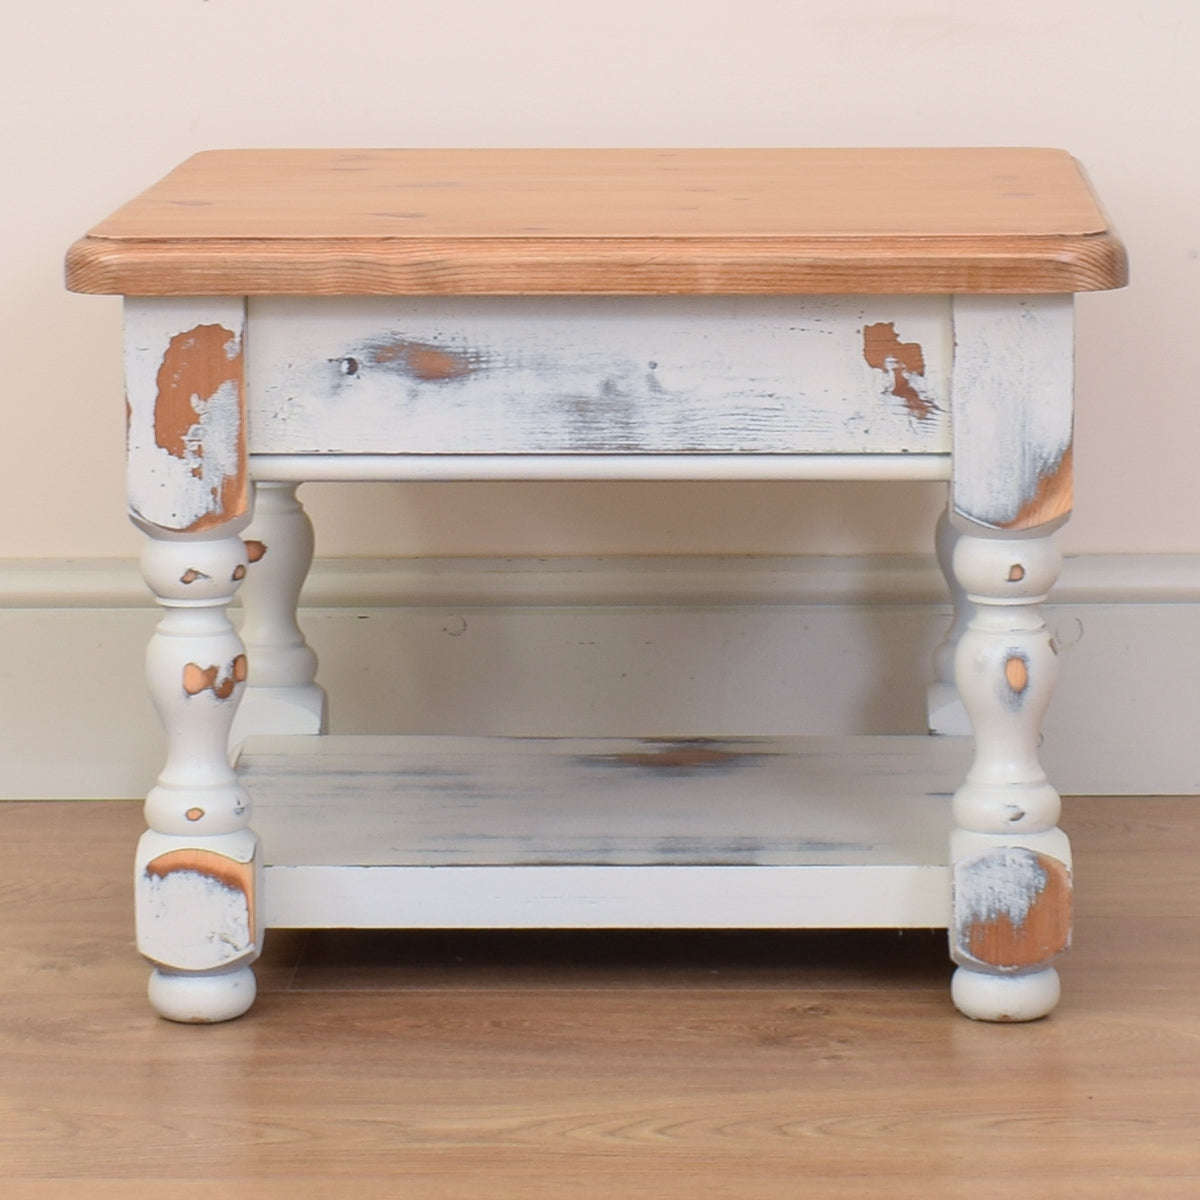 Rustic Pine Side Table / Coffee Table